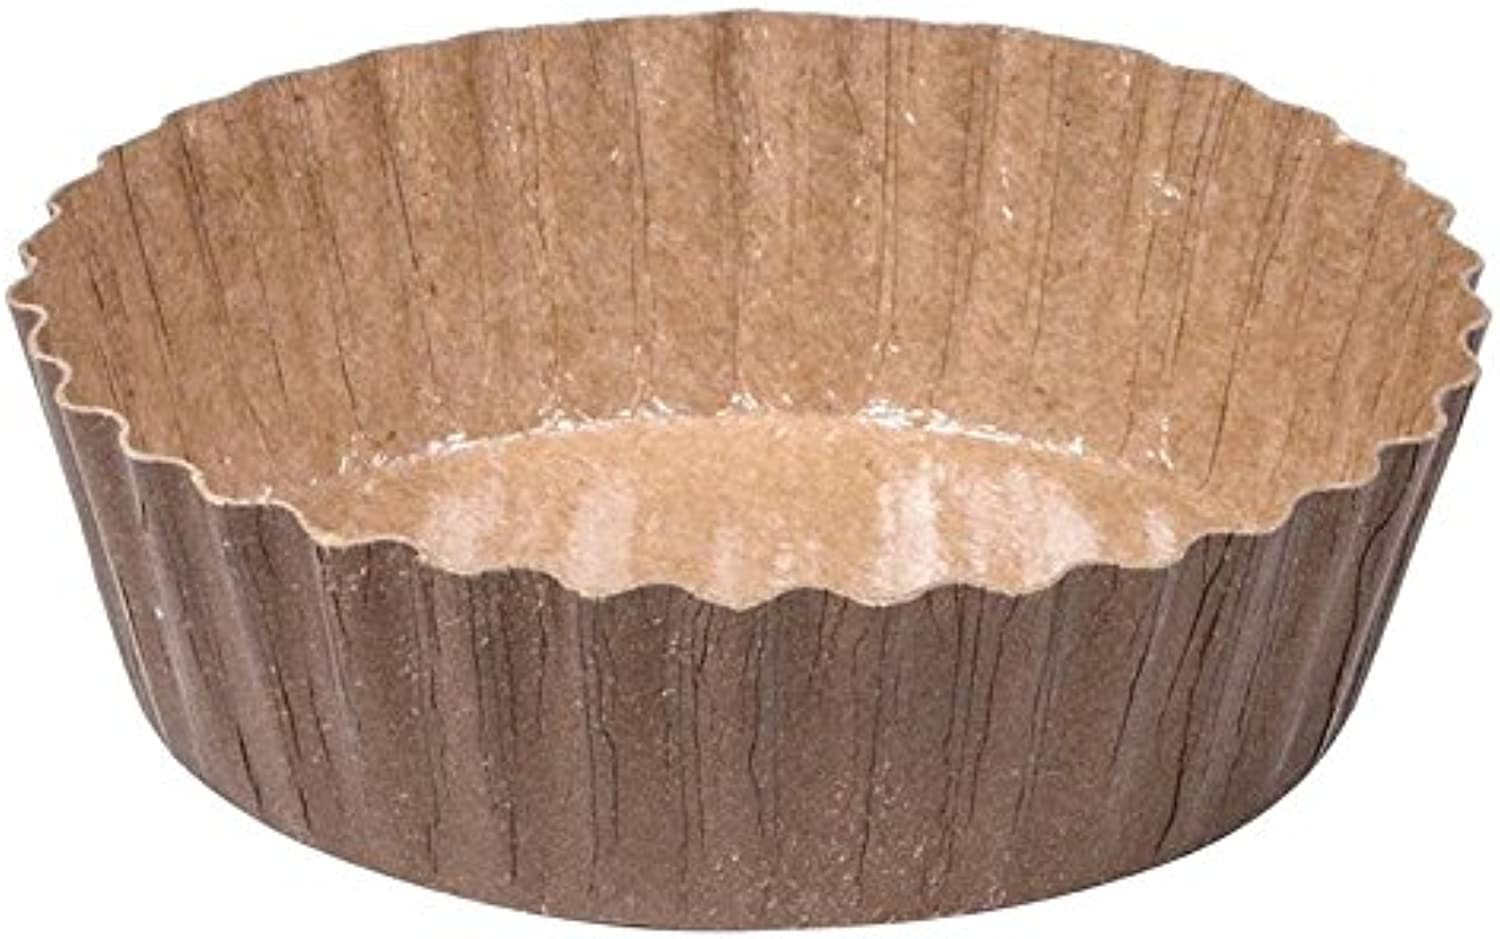 SOLUT  91068 Fluted Wall Round Baking Cup, 5.7 oz. Capacity, 4  Diameter x 1-1 8  Depth, Paper, Kraft Brown (Pack of 1200)